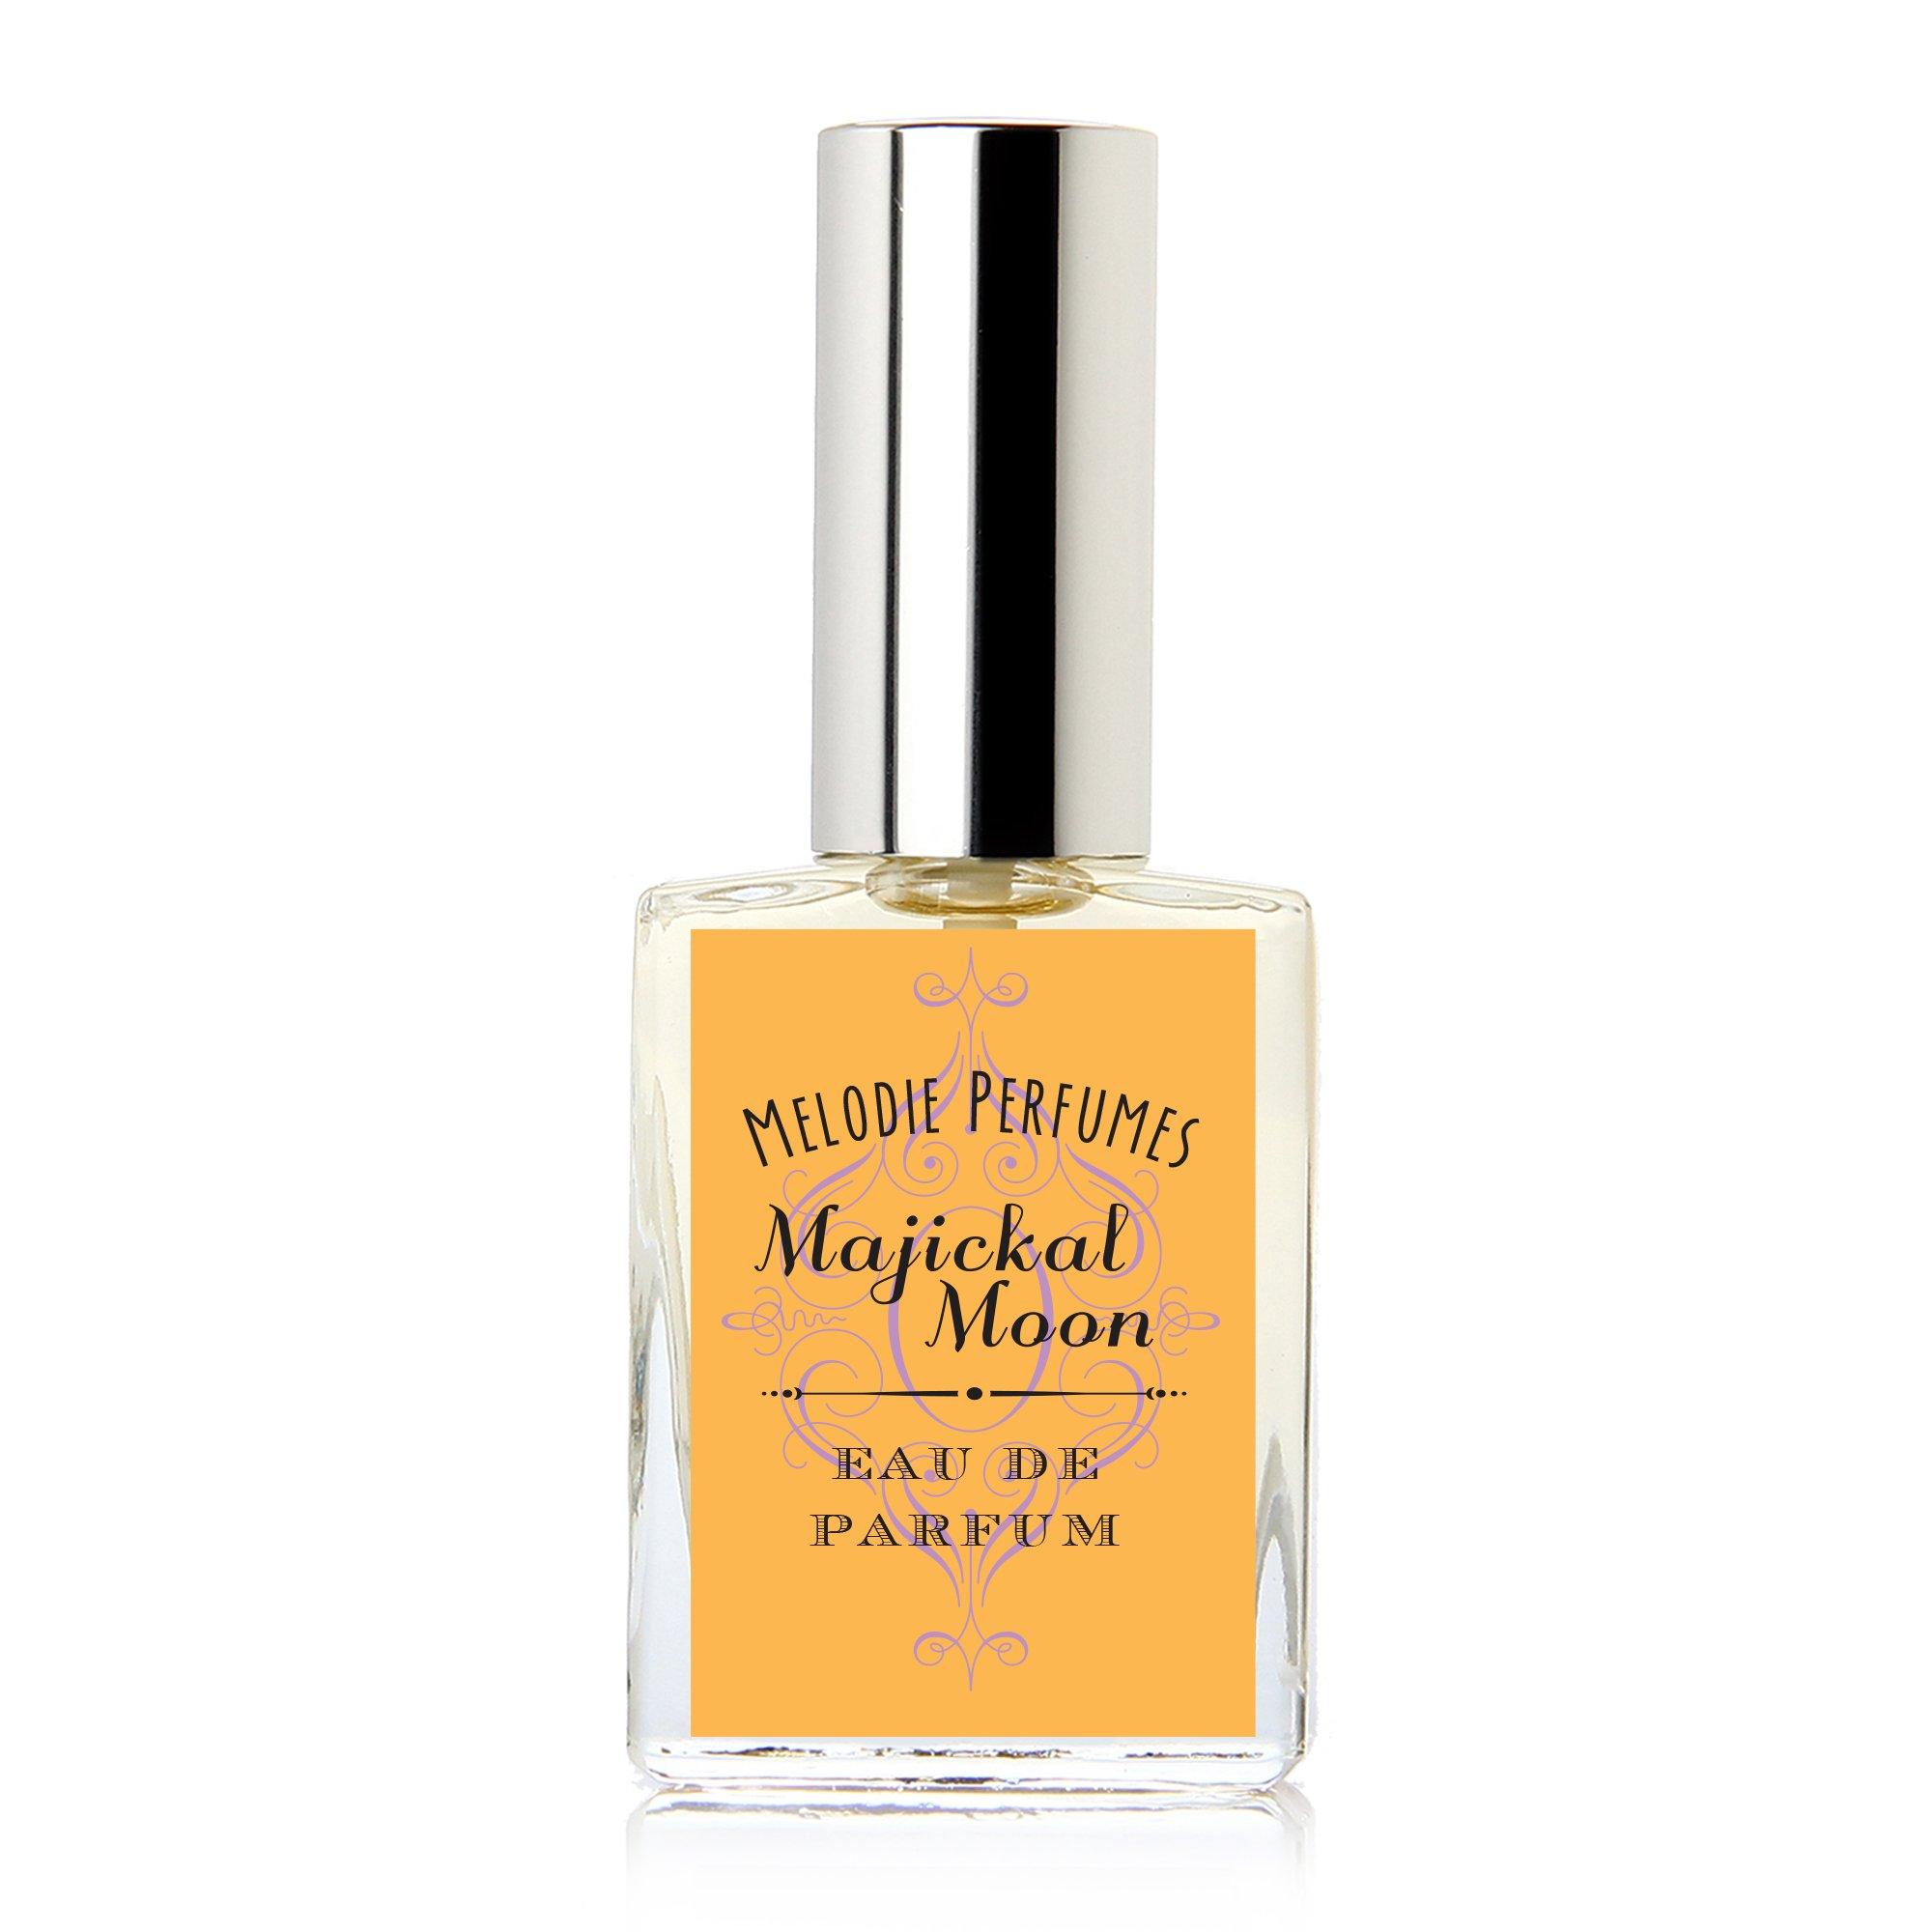 Melodie Perfumes Majickal Moon Pumpkin Lavender perfume for women. Magical Lavender herbal women's fragrance 15 ml.